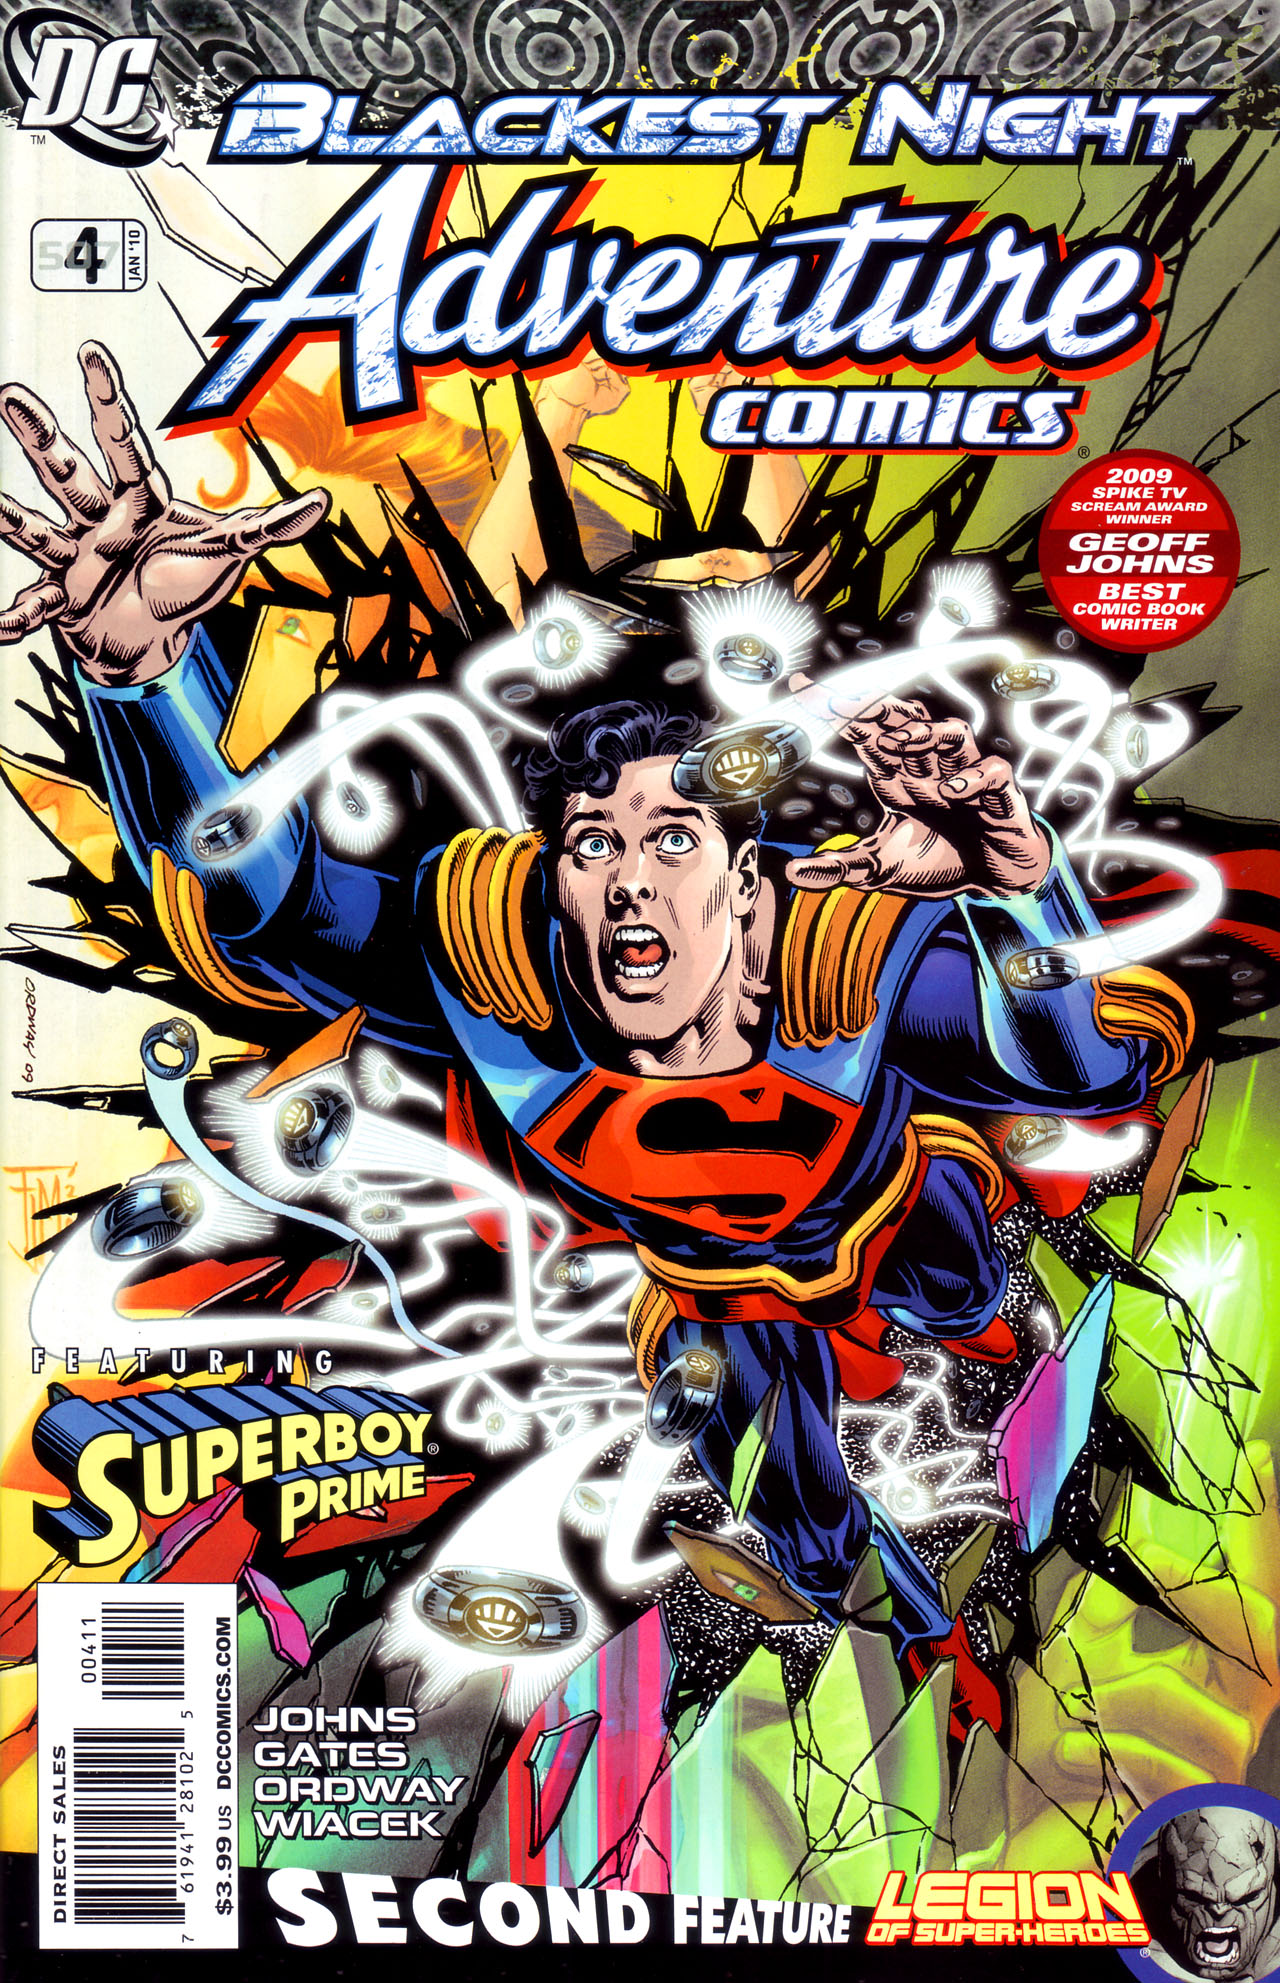 Read online Adventure Comics (2009) comic -  Issue #4 - 1